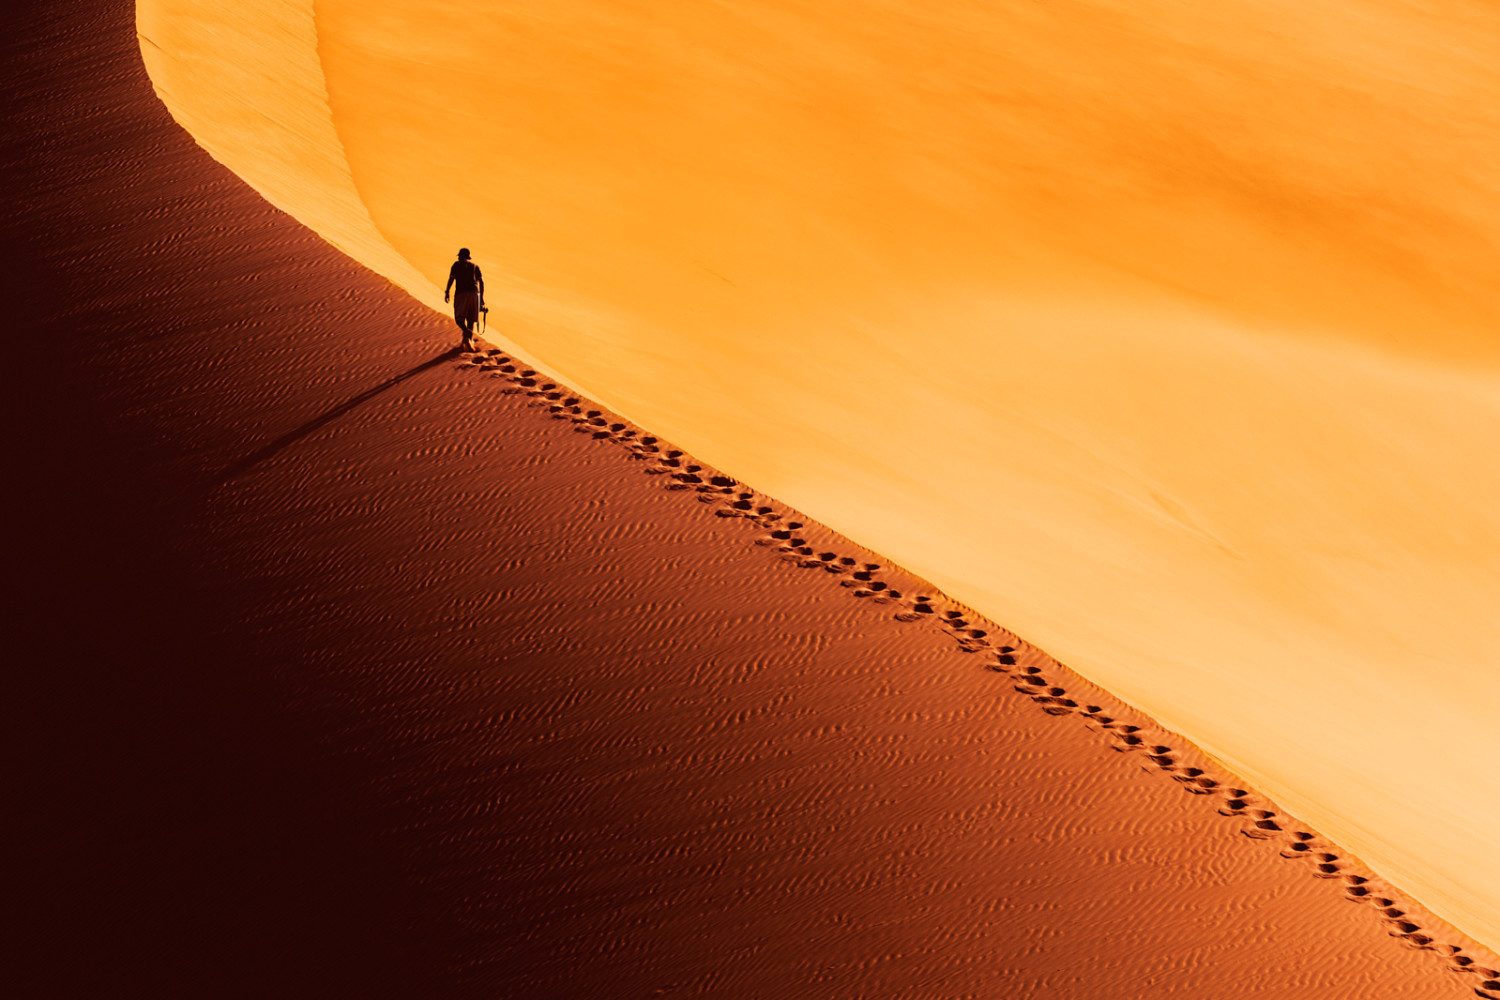 Top 20 Travel Photos on 500px So Far This Year